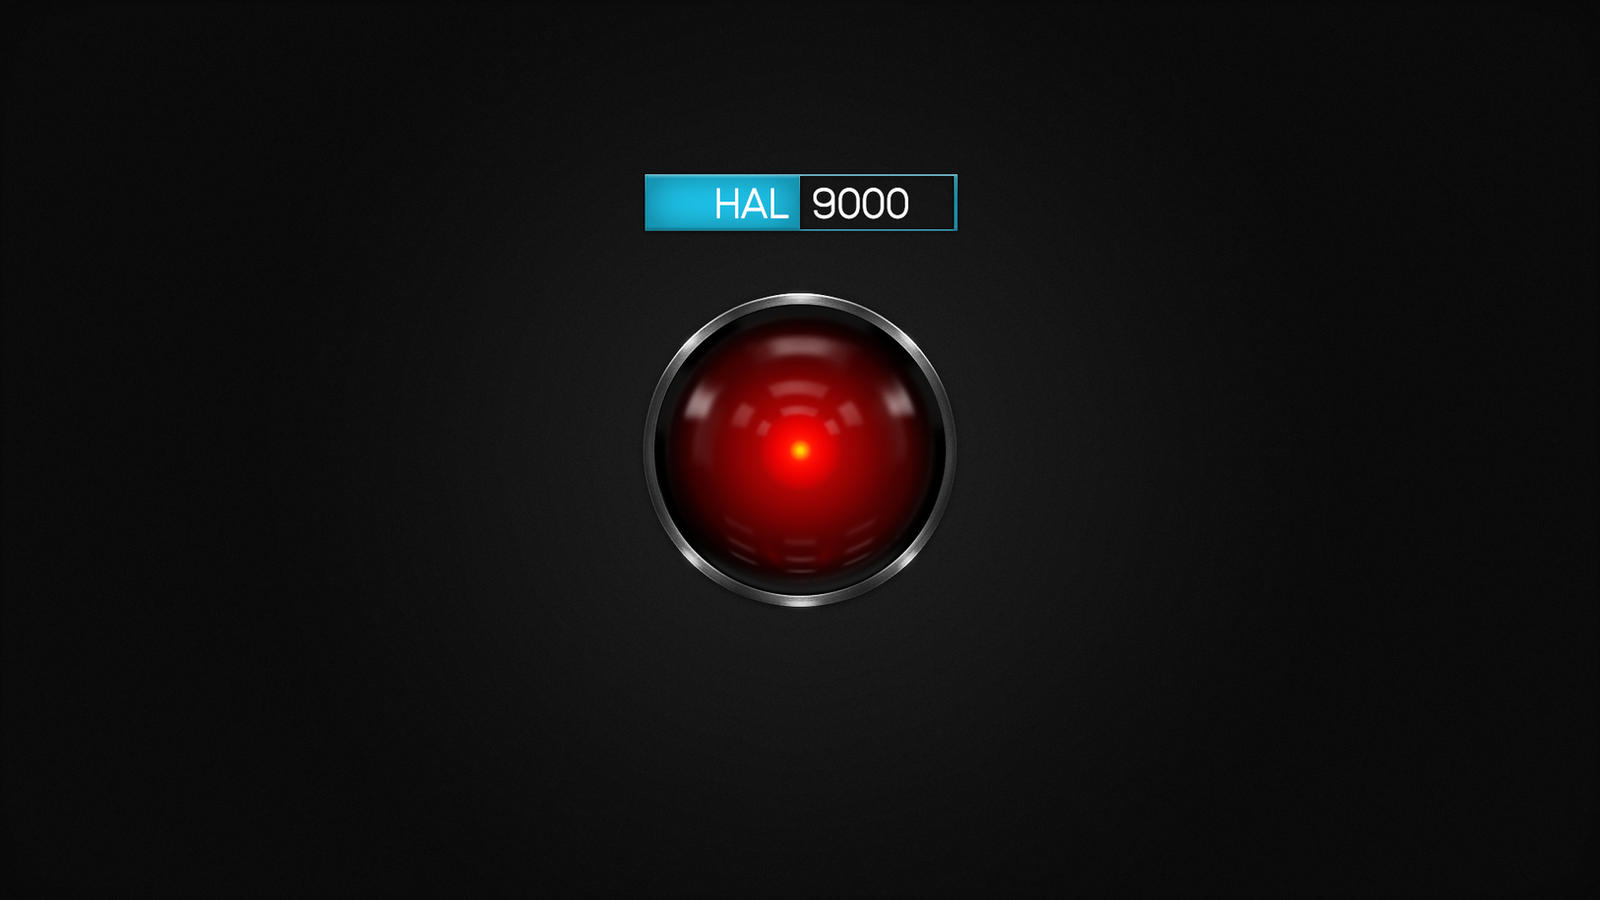 hal 9000 desktop background zoom wallpapers